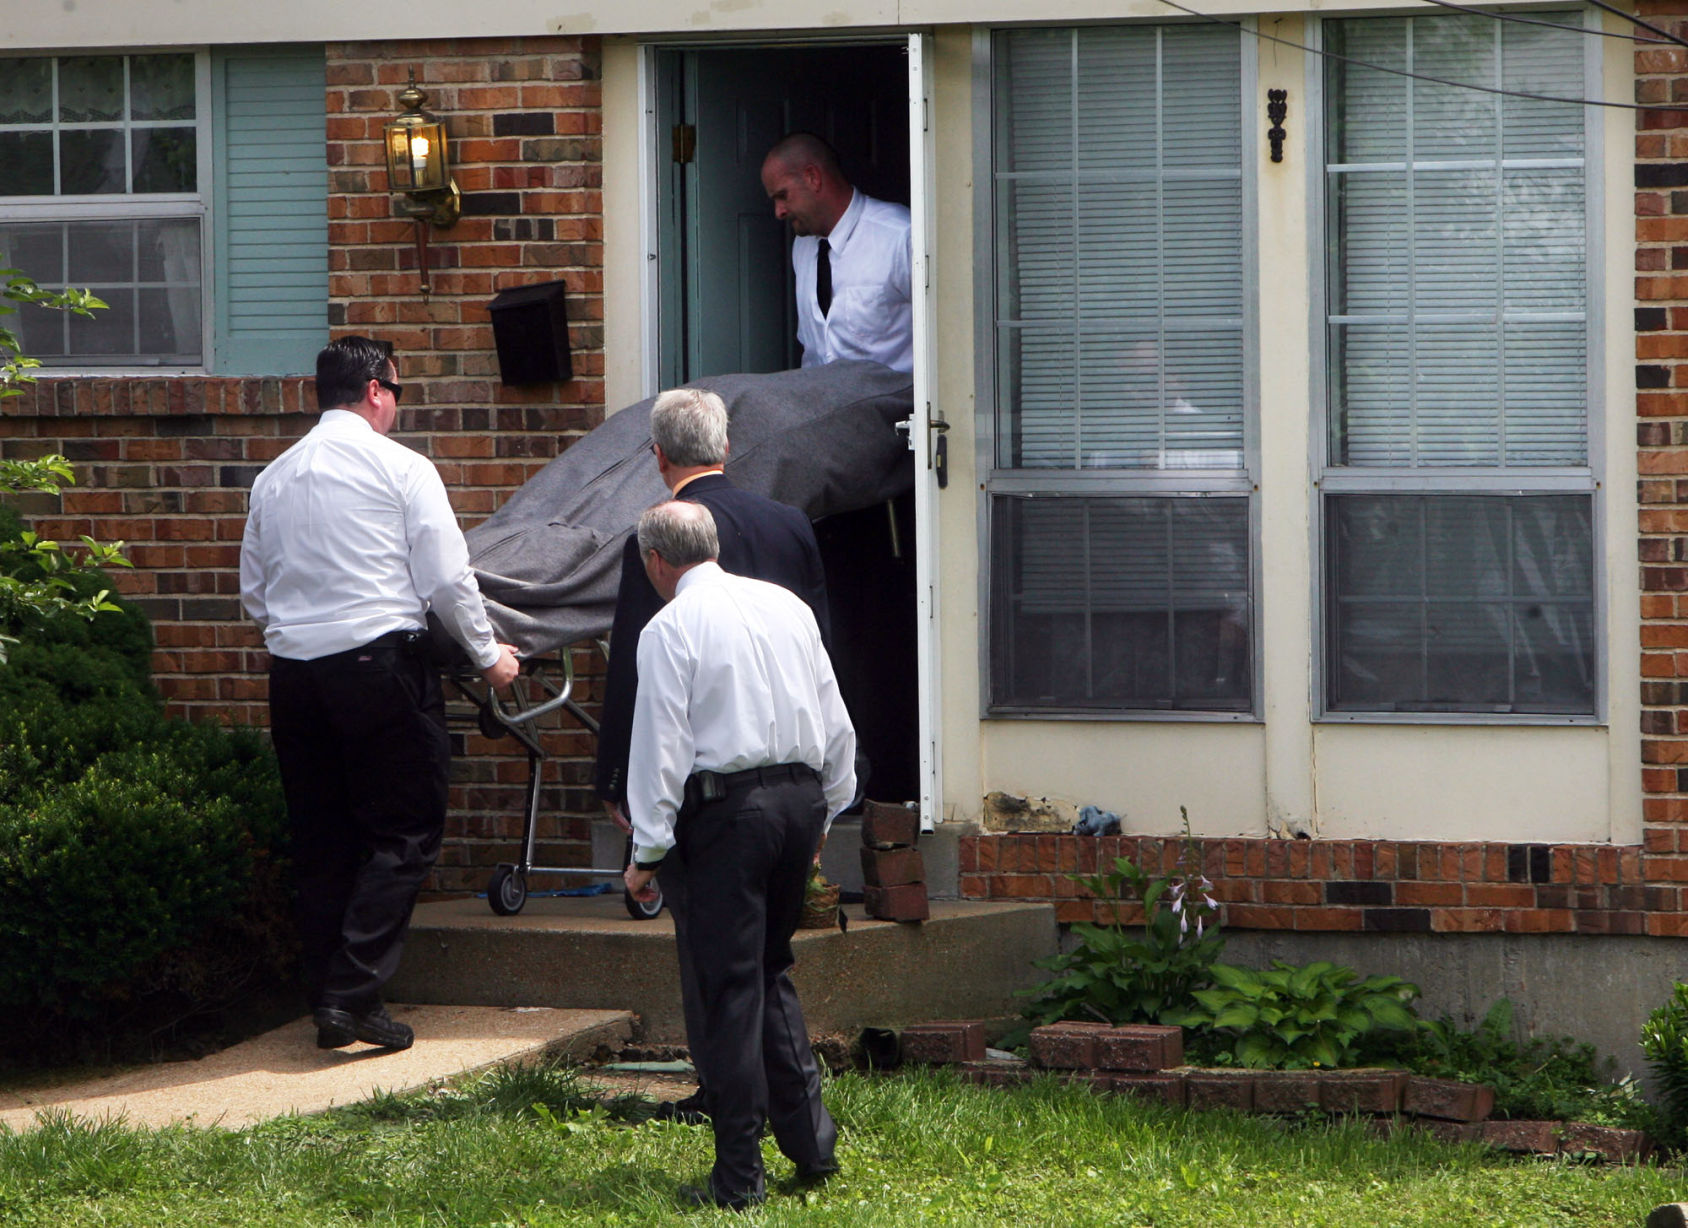 Four Killed In Affton Home